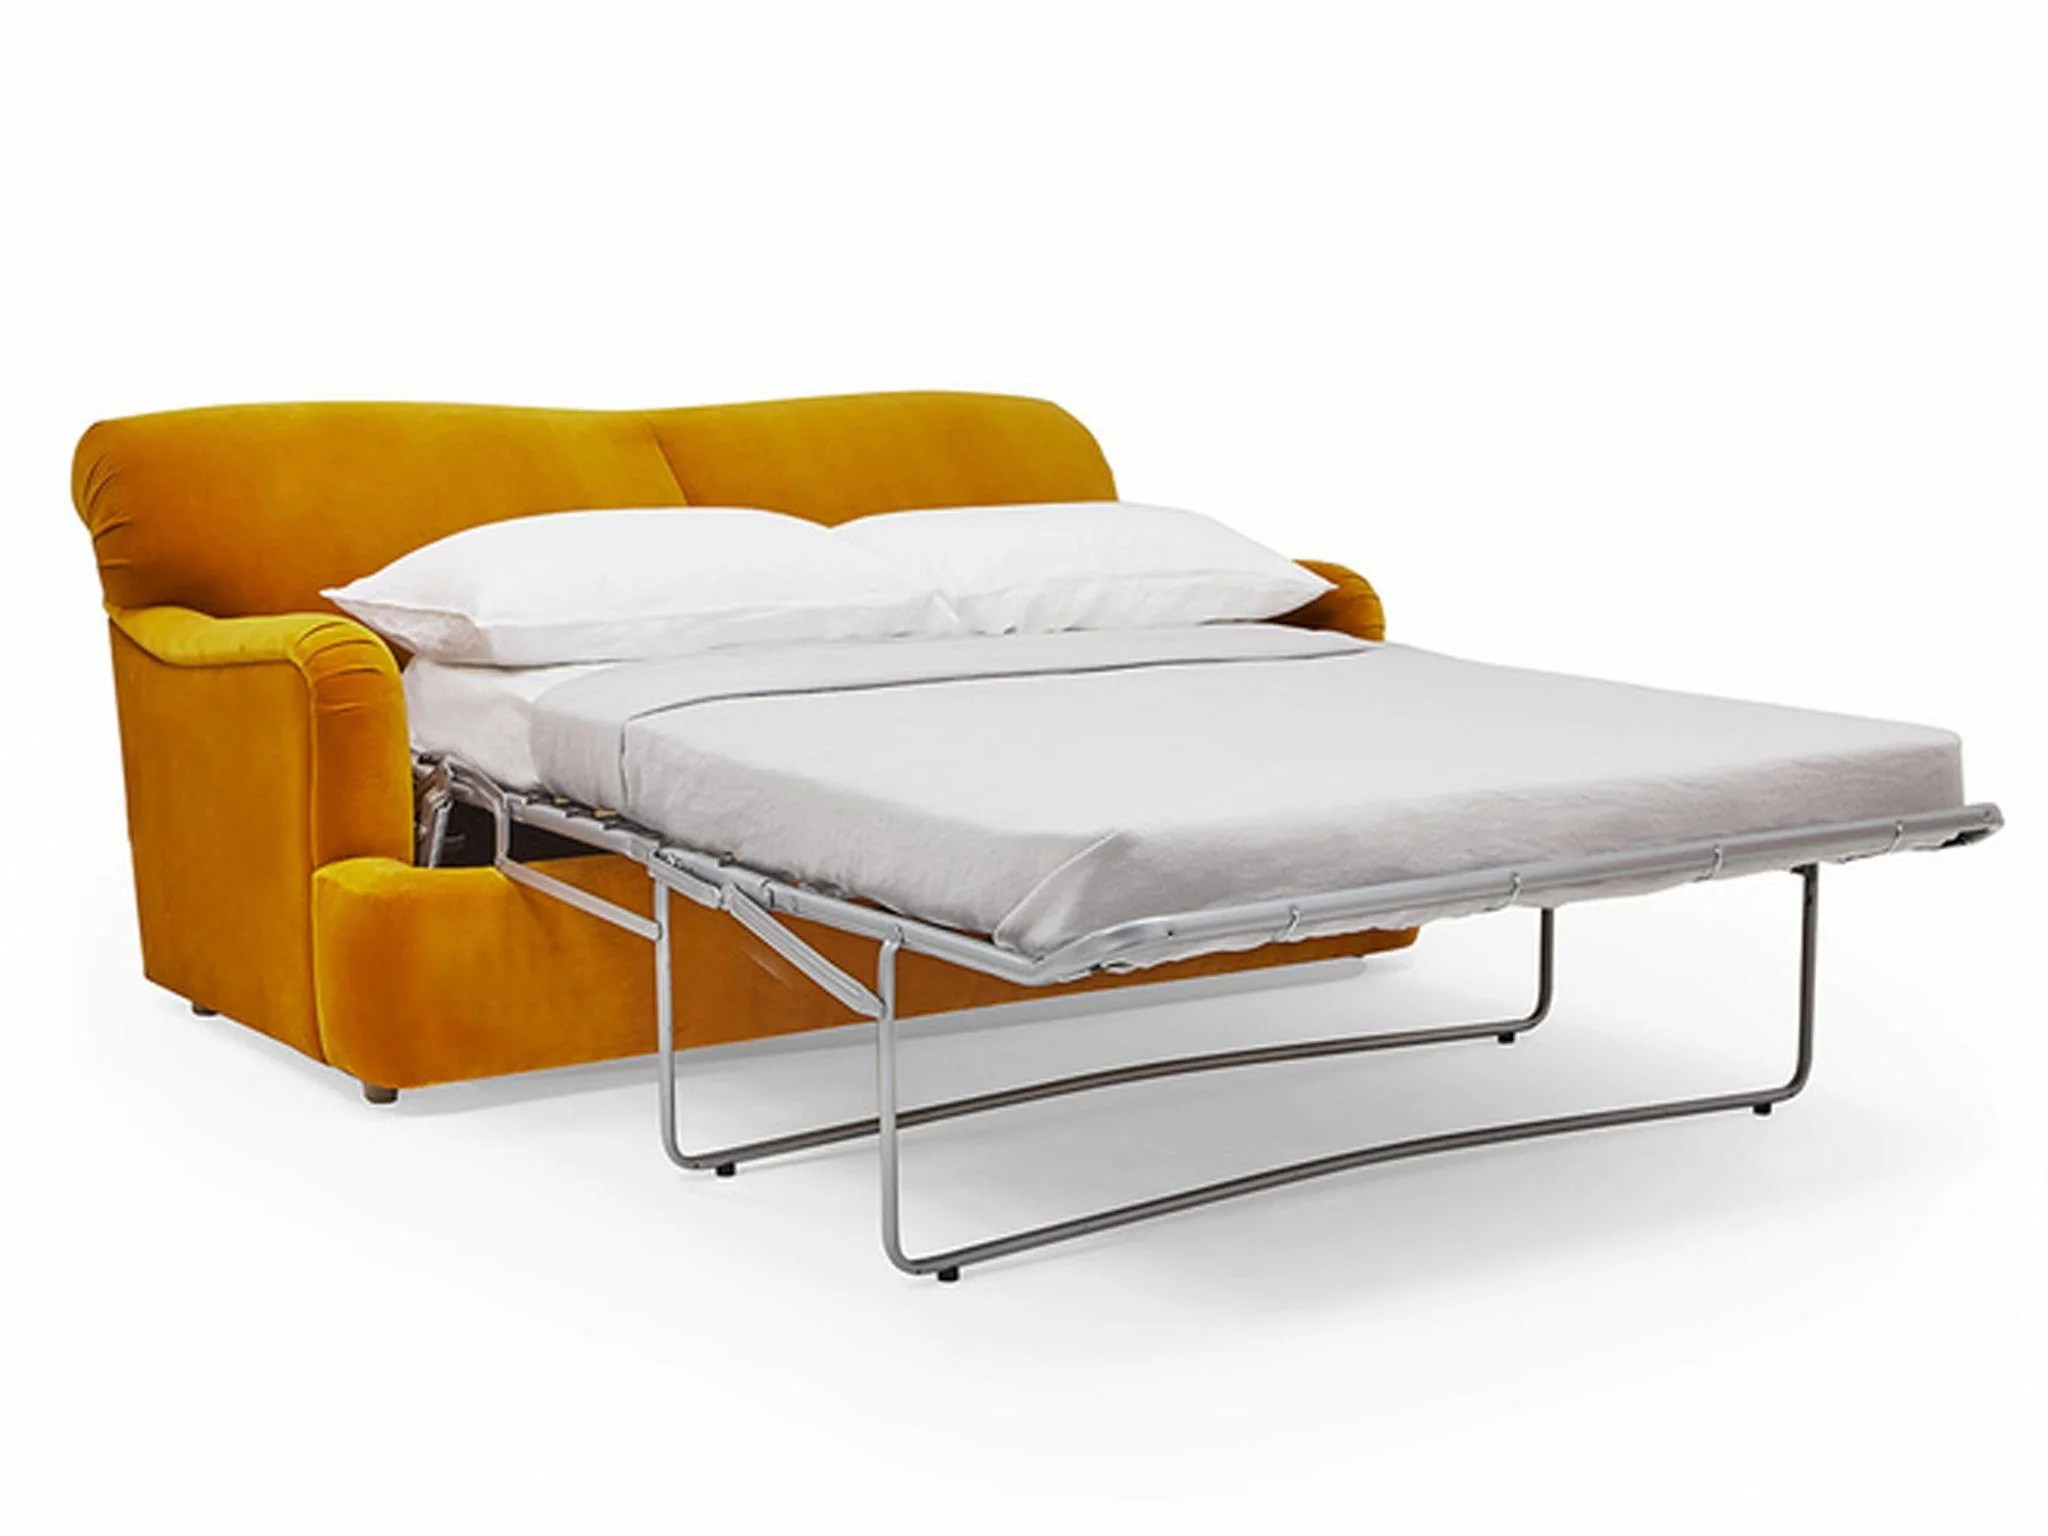 boconcept sleeper sofa review good quality covers 12 best beds the independent a deep seat and plump feather wrapped foam cushions put pudding bed top of list for comfort it s handmade in derbyshire comes with 10 year